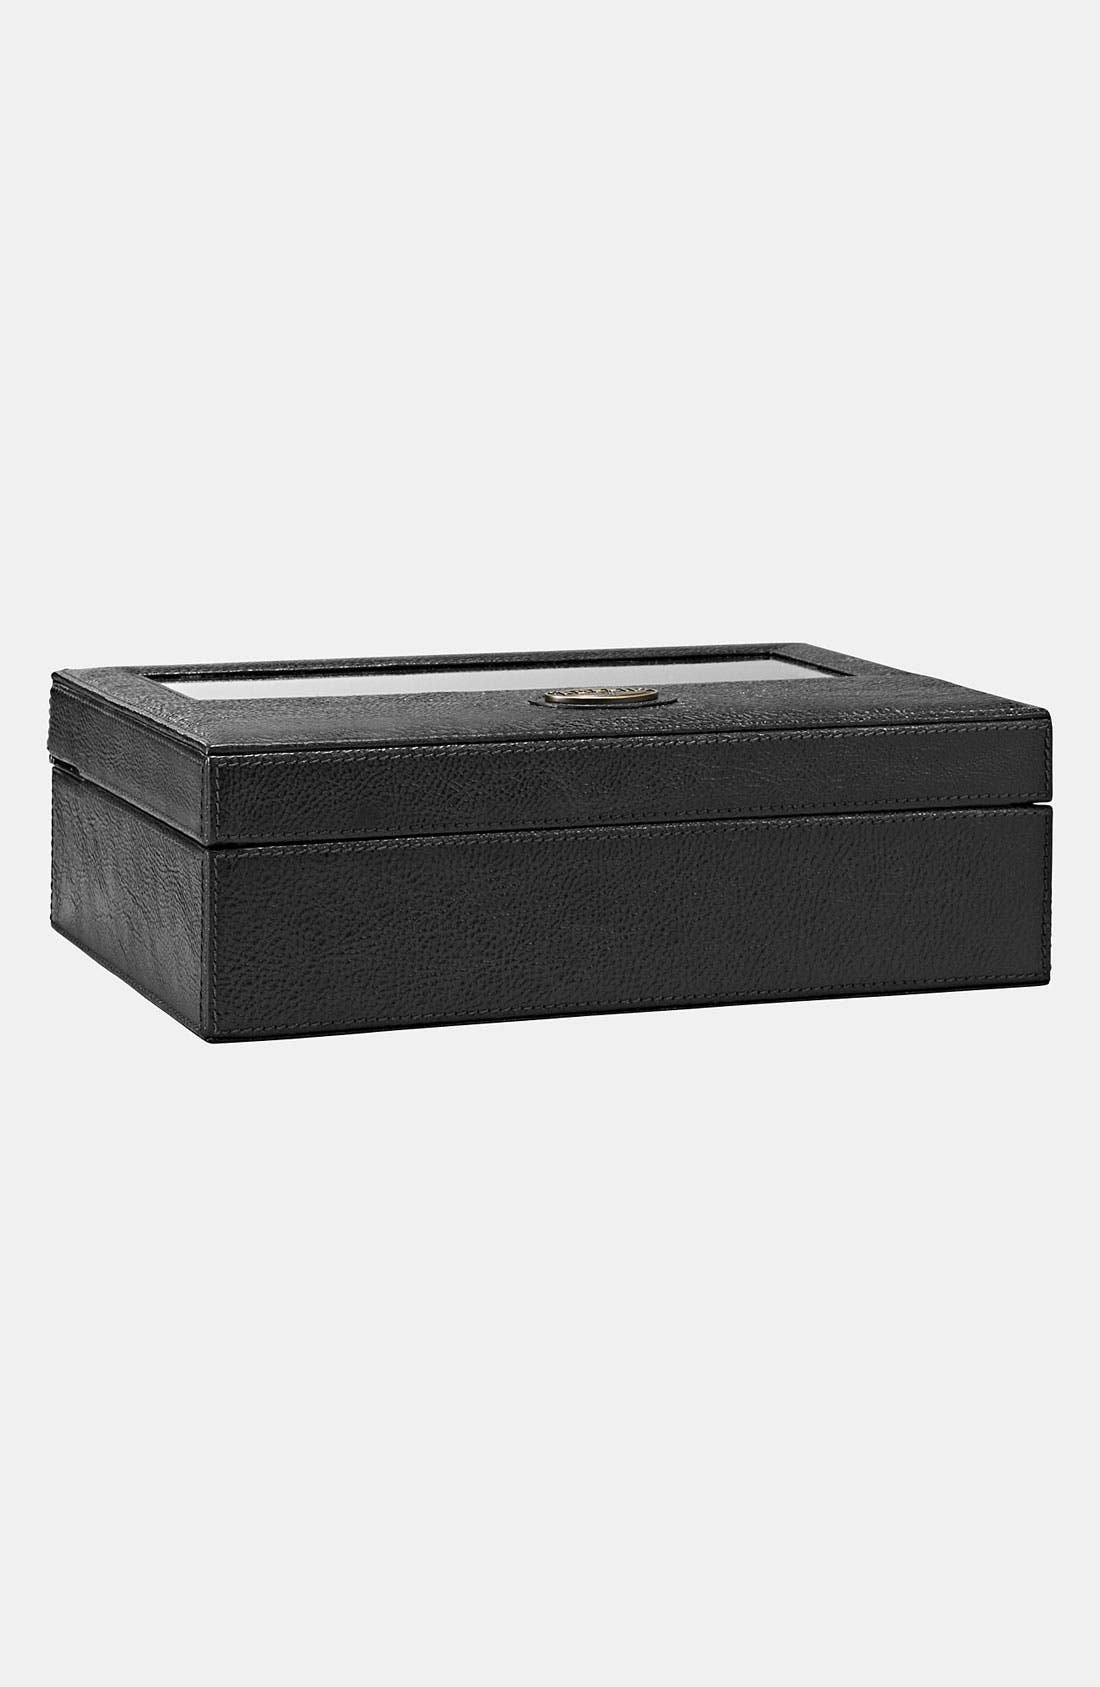 Alternate Image 1 Selected - Fossil 'Estate' Five Piece Watch Box